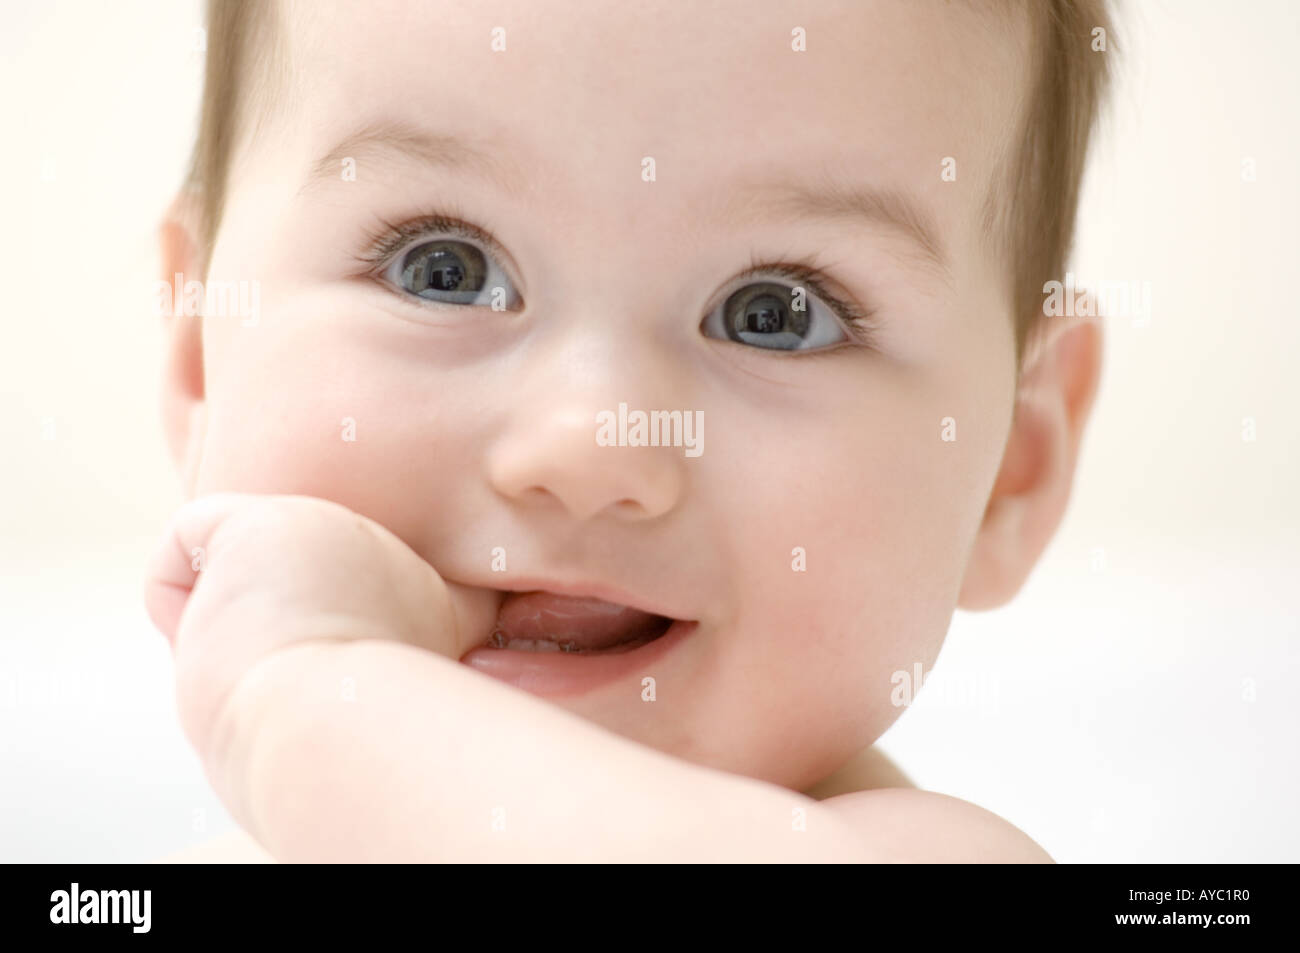 6 month old caucasian baby girl smiling with finger in her mouth - Stock Image